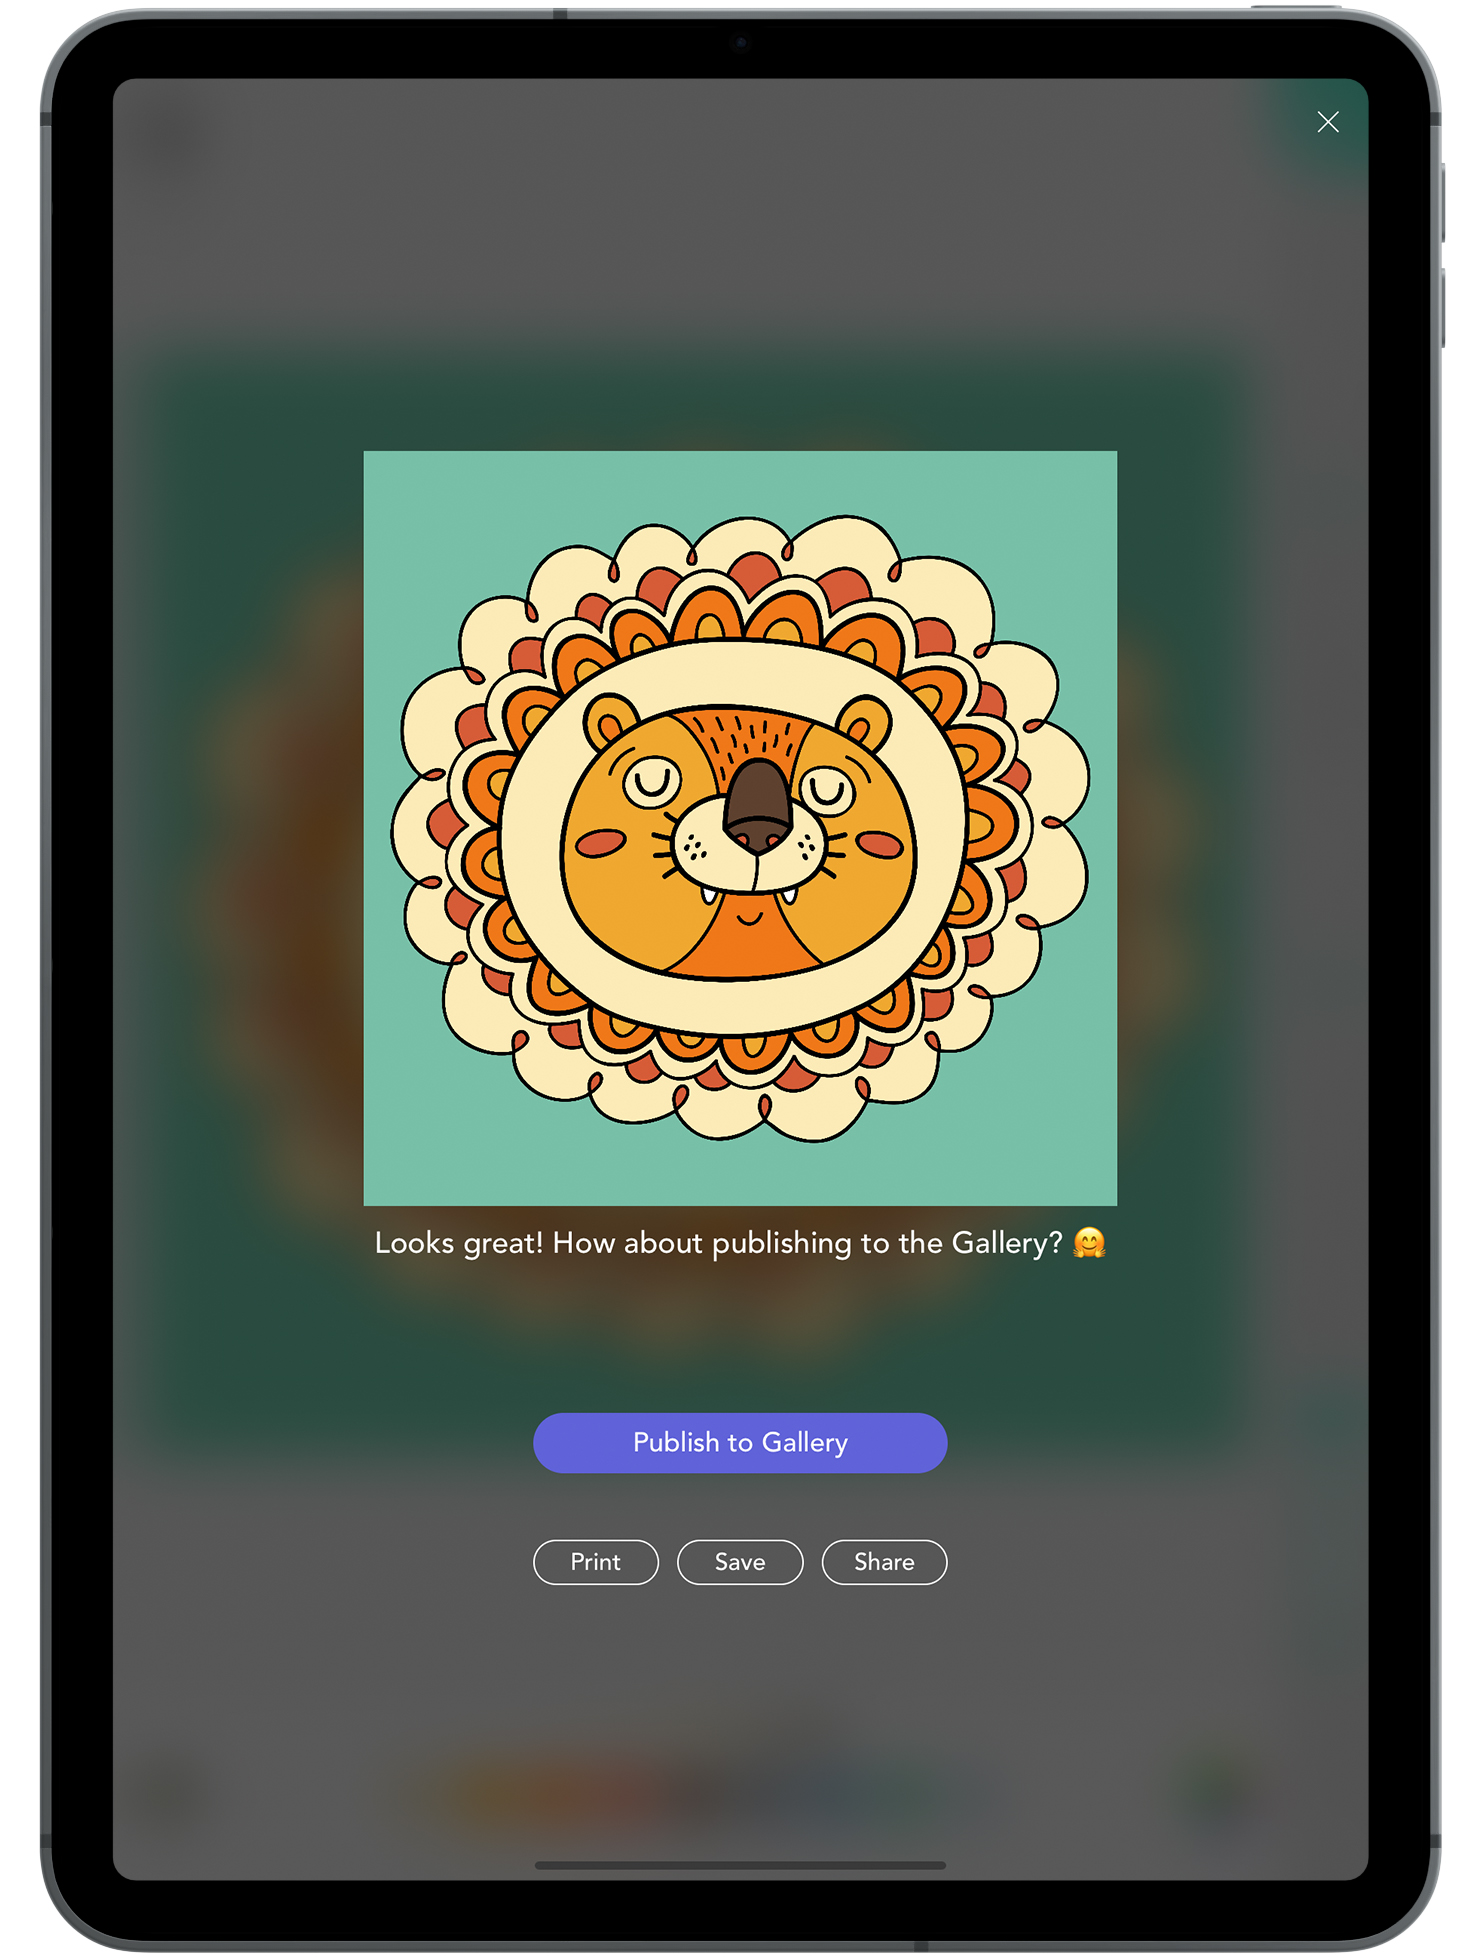 From The Coloring Screen - When you have finished coloring an image you can post it directly from the Coloring Screen, by tapping on the check mark at the top of the screen.